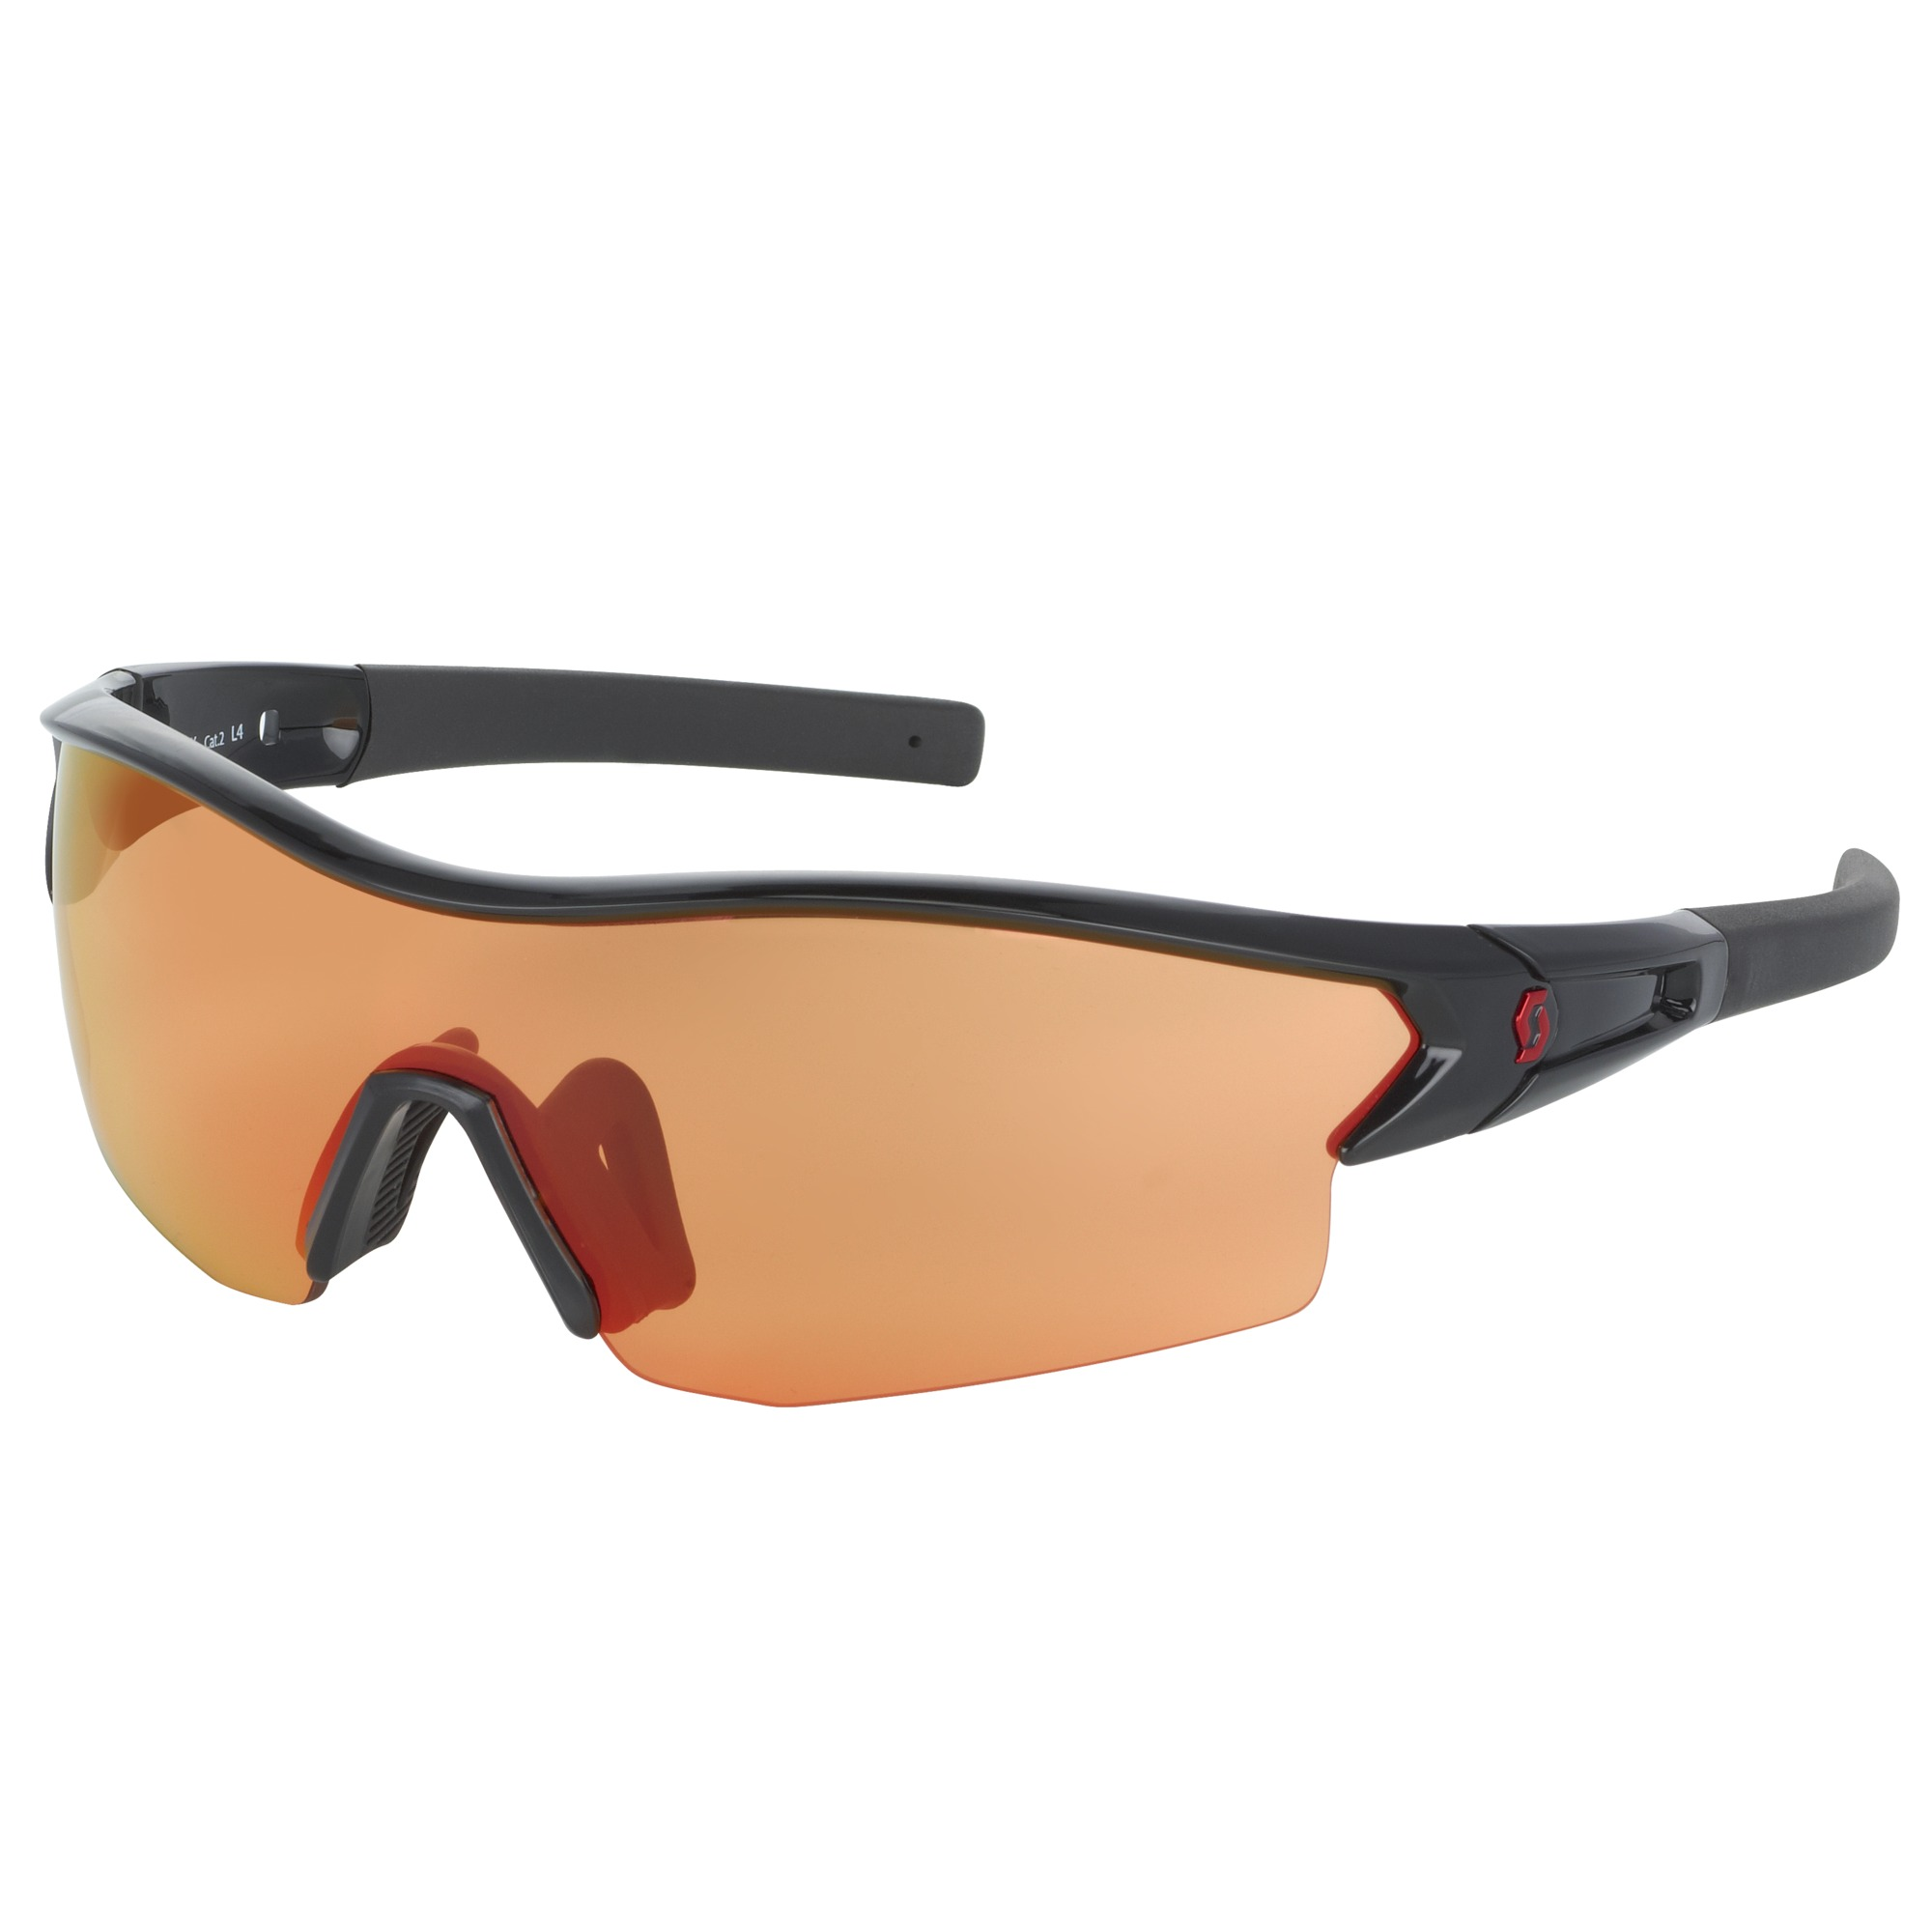 OCCHIALE SPORTIVO SCOTT LEAP SUNGLASSES 238999 BLACK GLOSSY RED.jpg